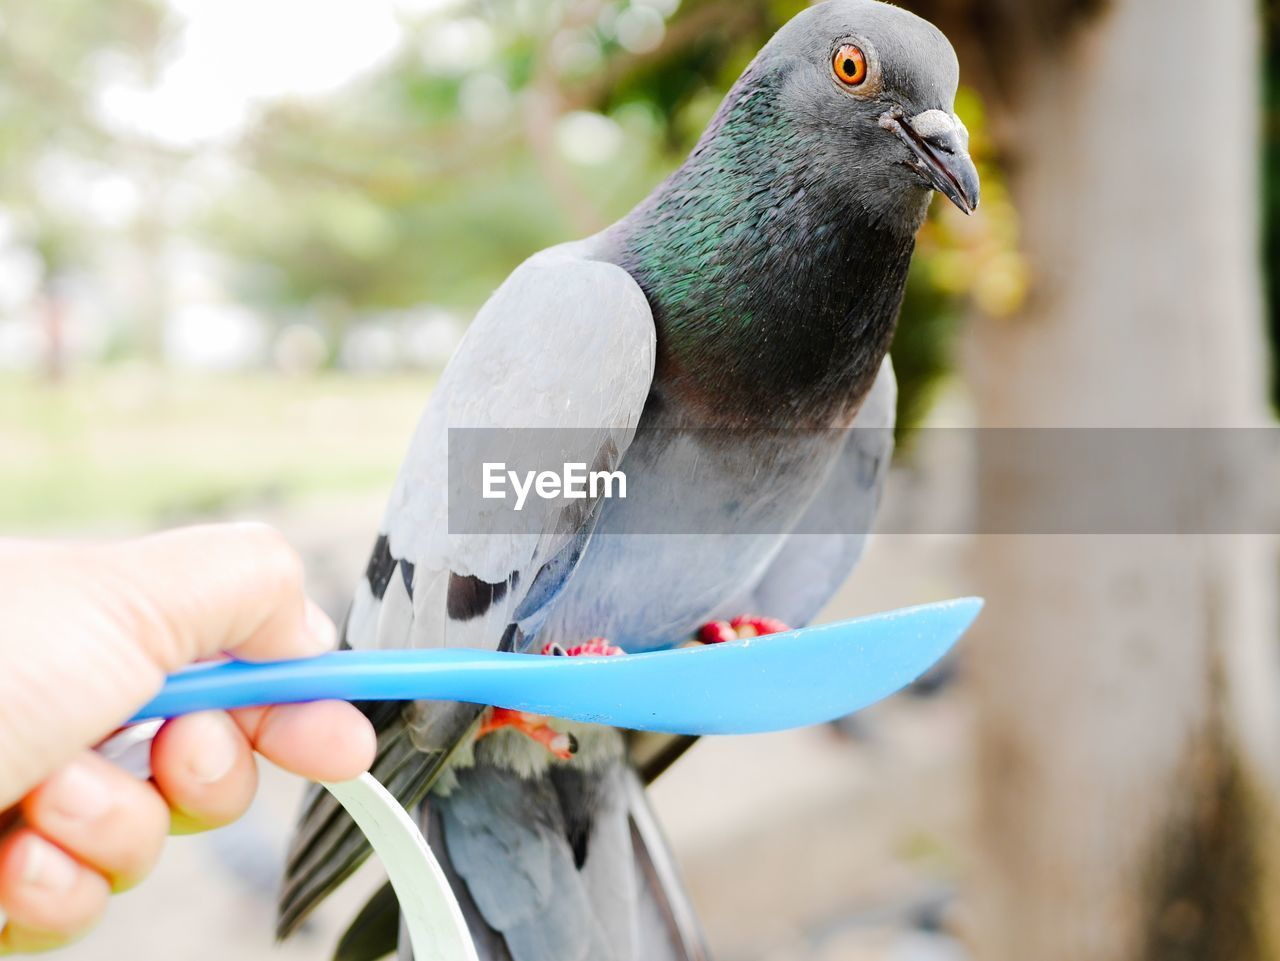 bird, vertebrate, focus on foreground, animal wildlife, animals in the wild, human hand, one animal, one person, day, hand, holding, human body part, close-up, perching, real people, unrecognizable person, outdoors, finger